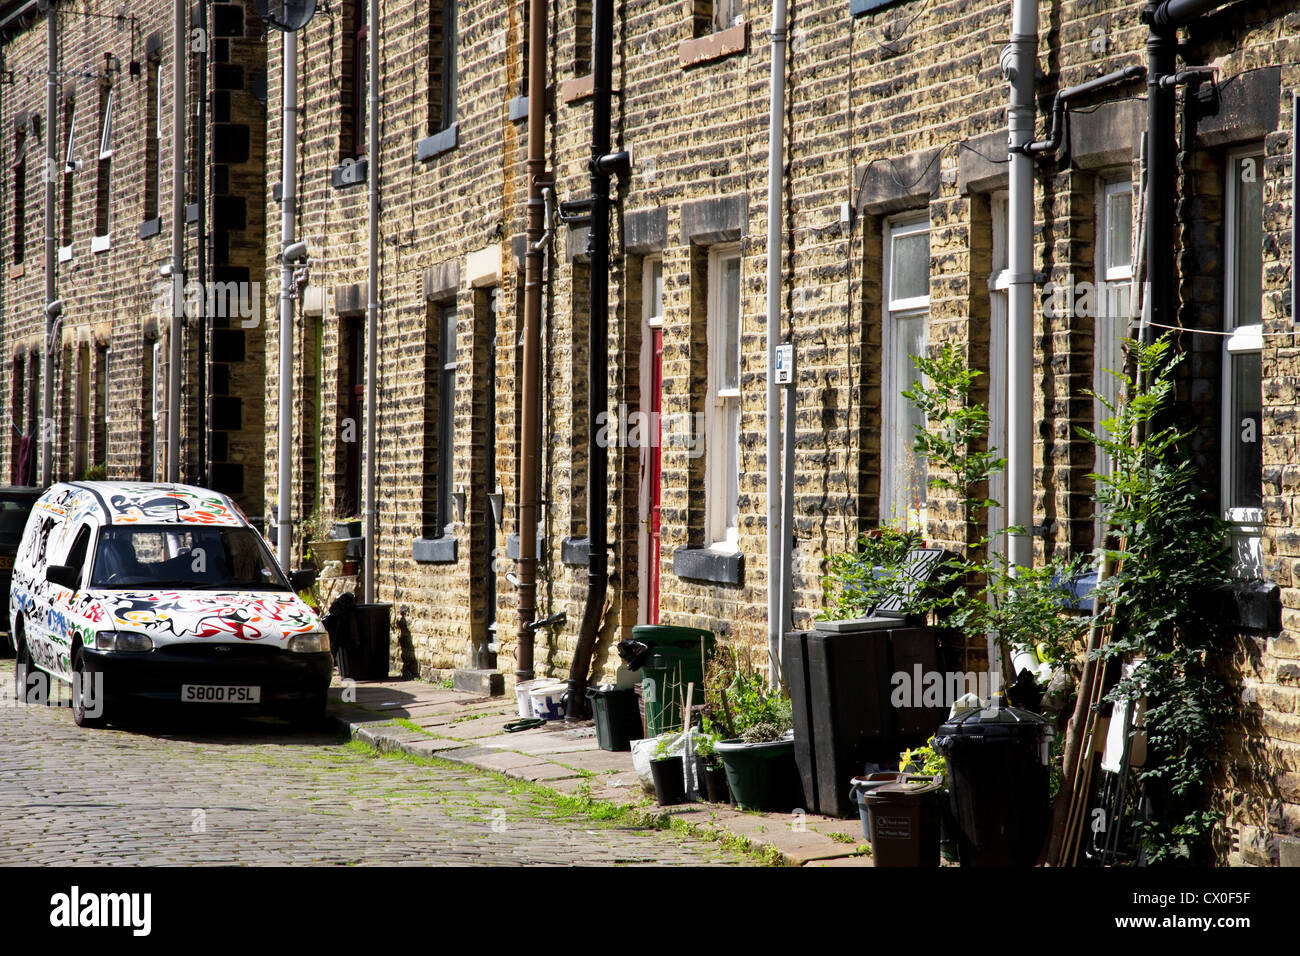 Back to Back Terraced houses (+ painted van) on cobbled street, Hebden Bridge, West Yorkshire, England, UK - Stock Image